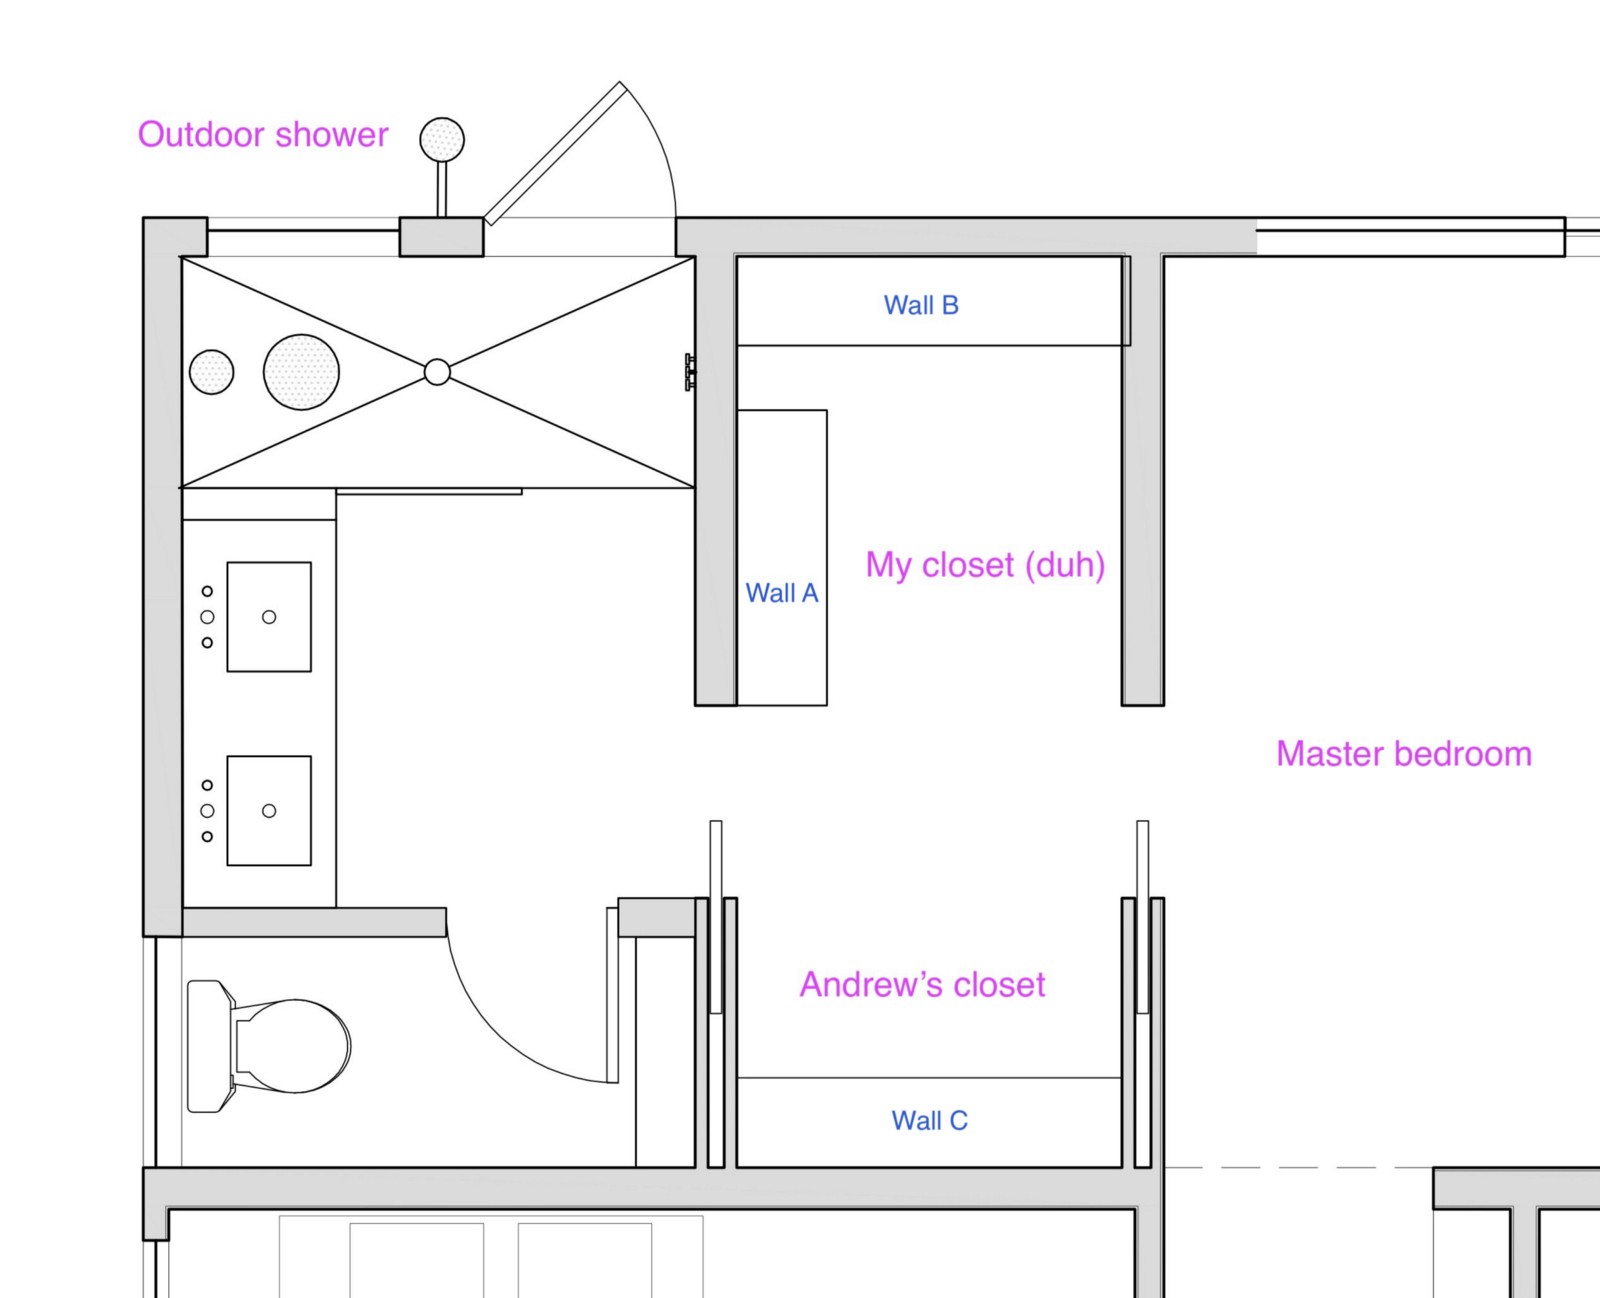 hvac wiring diagrams diagram schemes